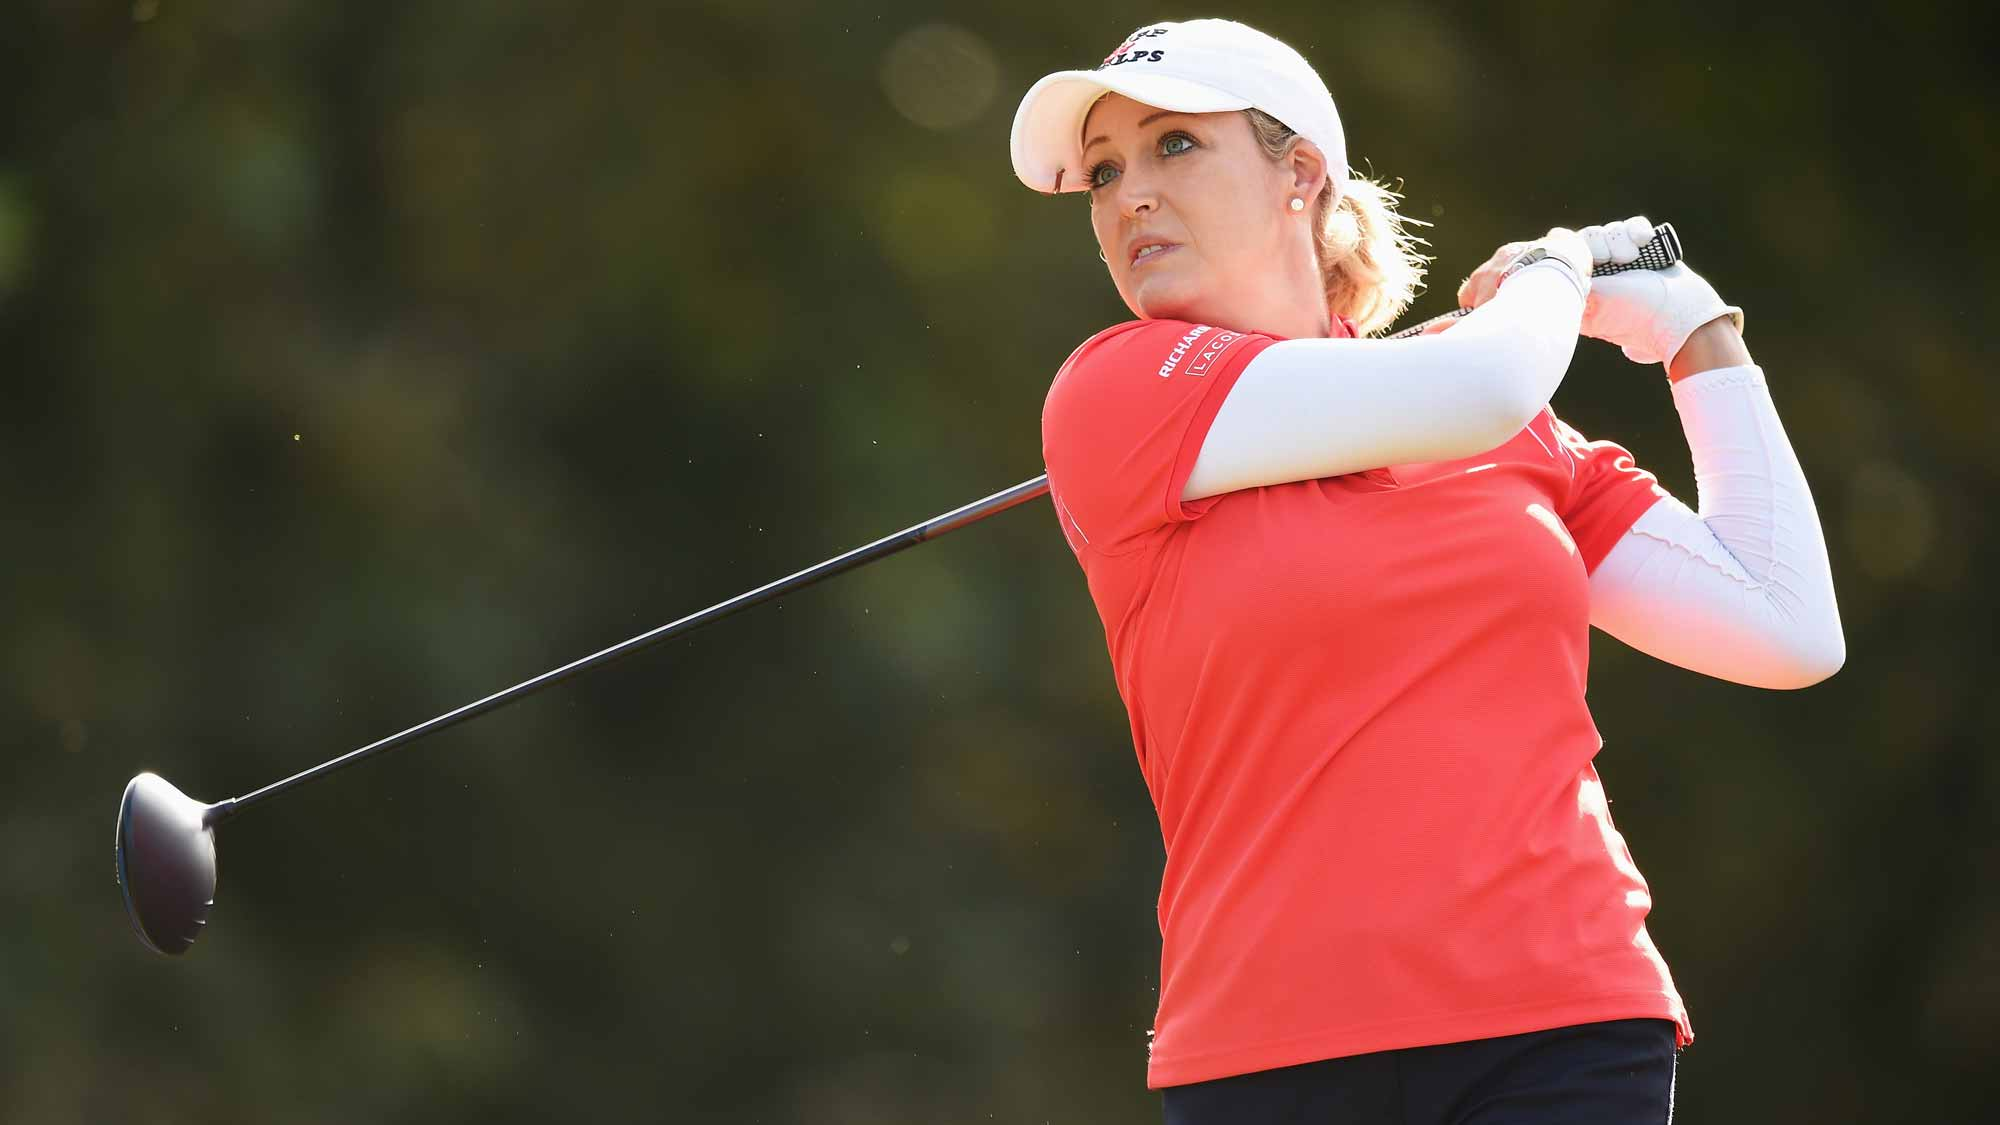 Cristie Kerr during the second round of the Evian Championship